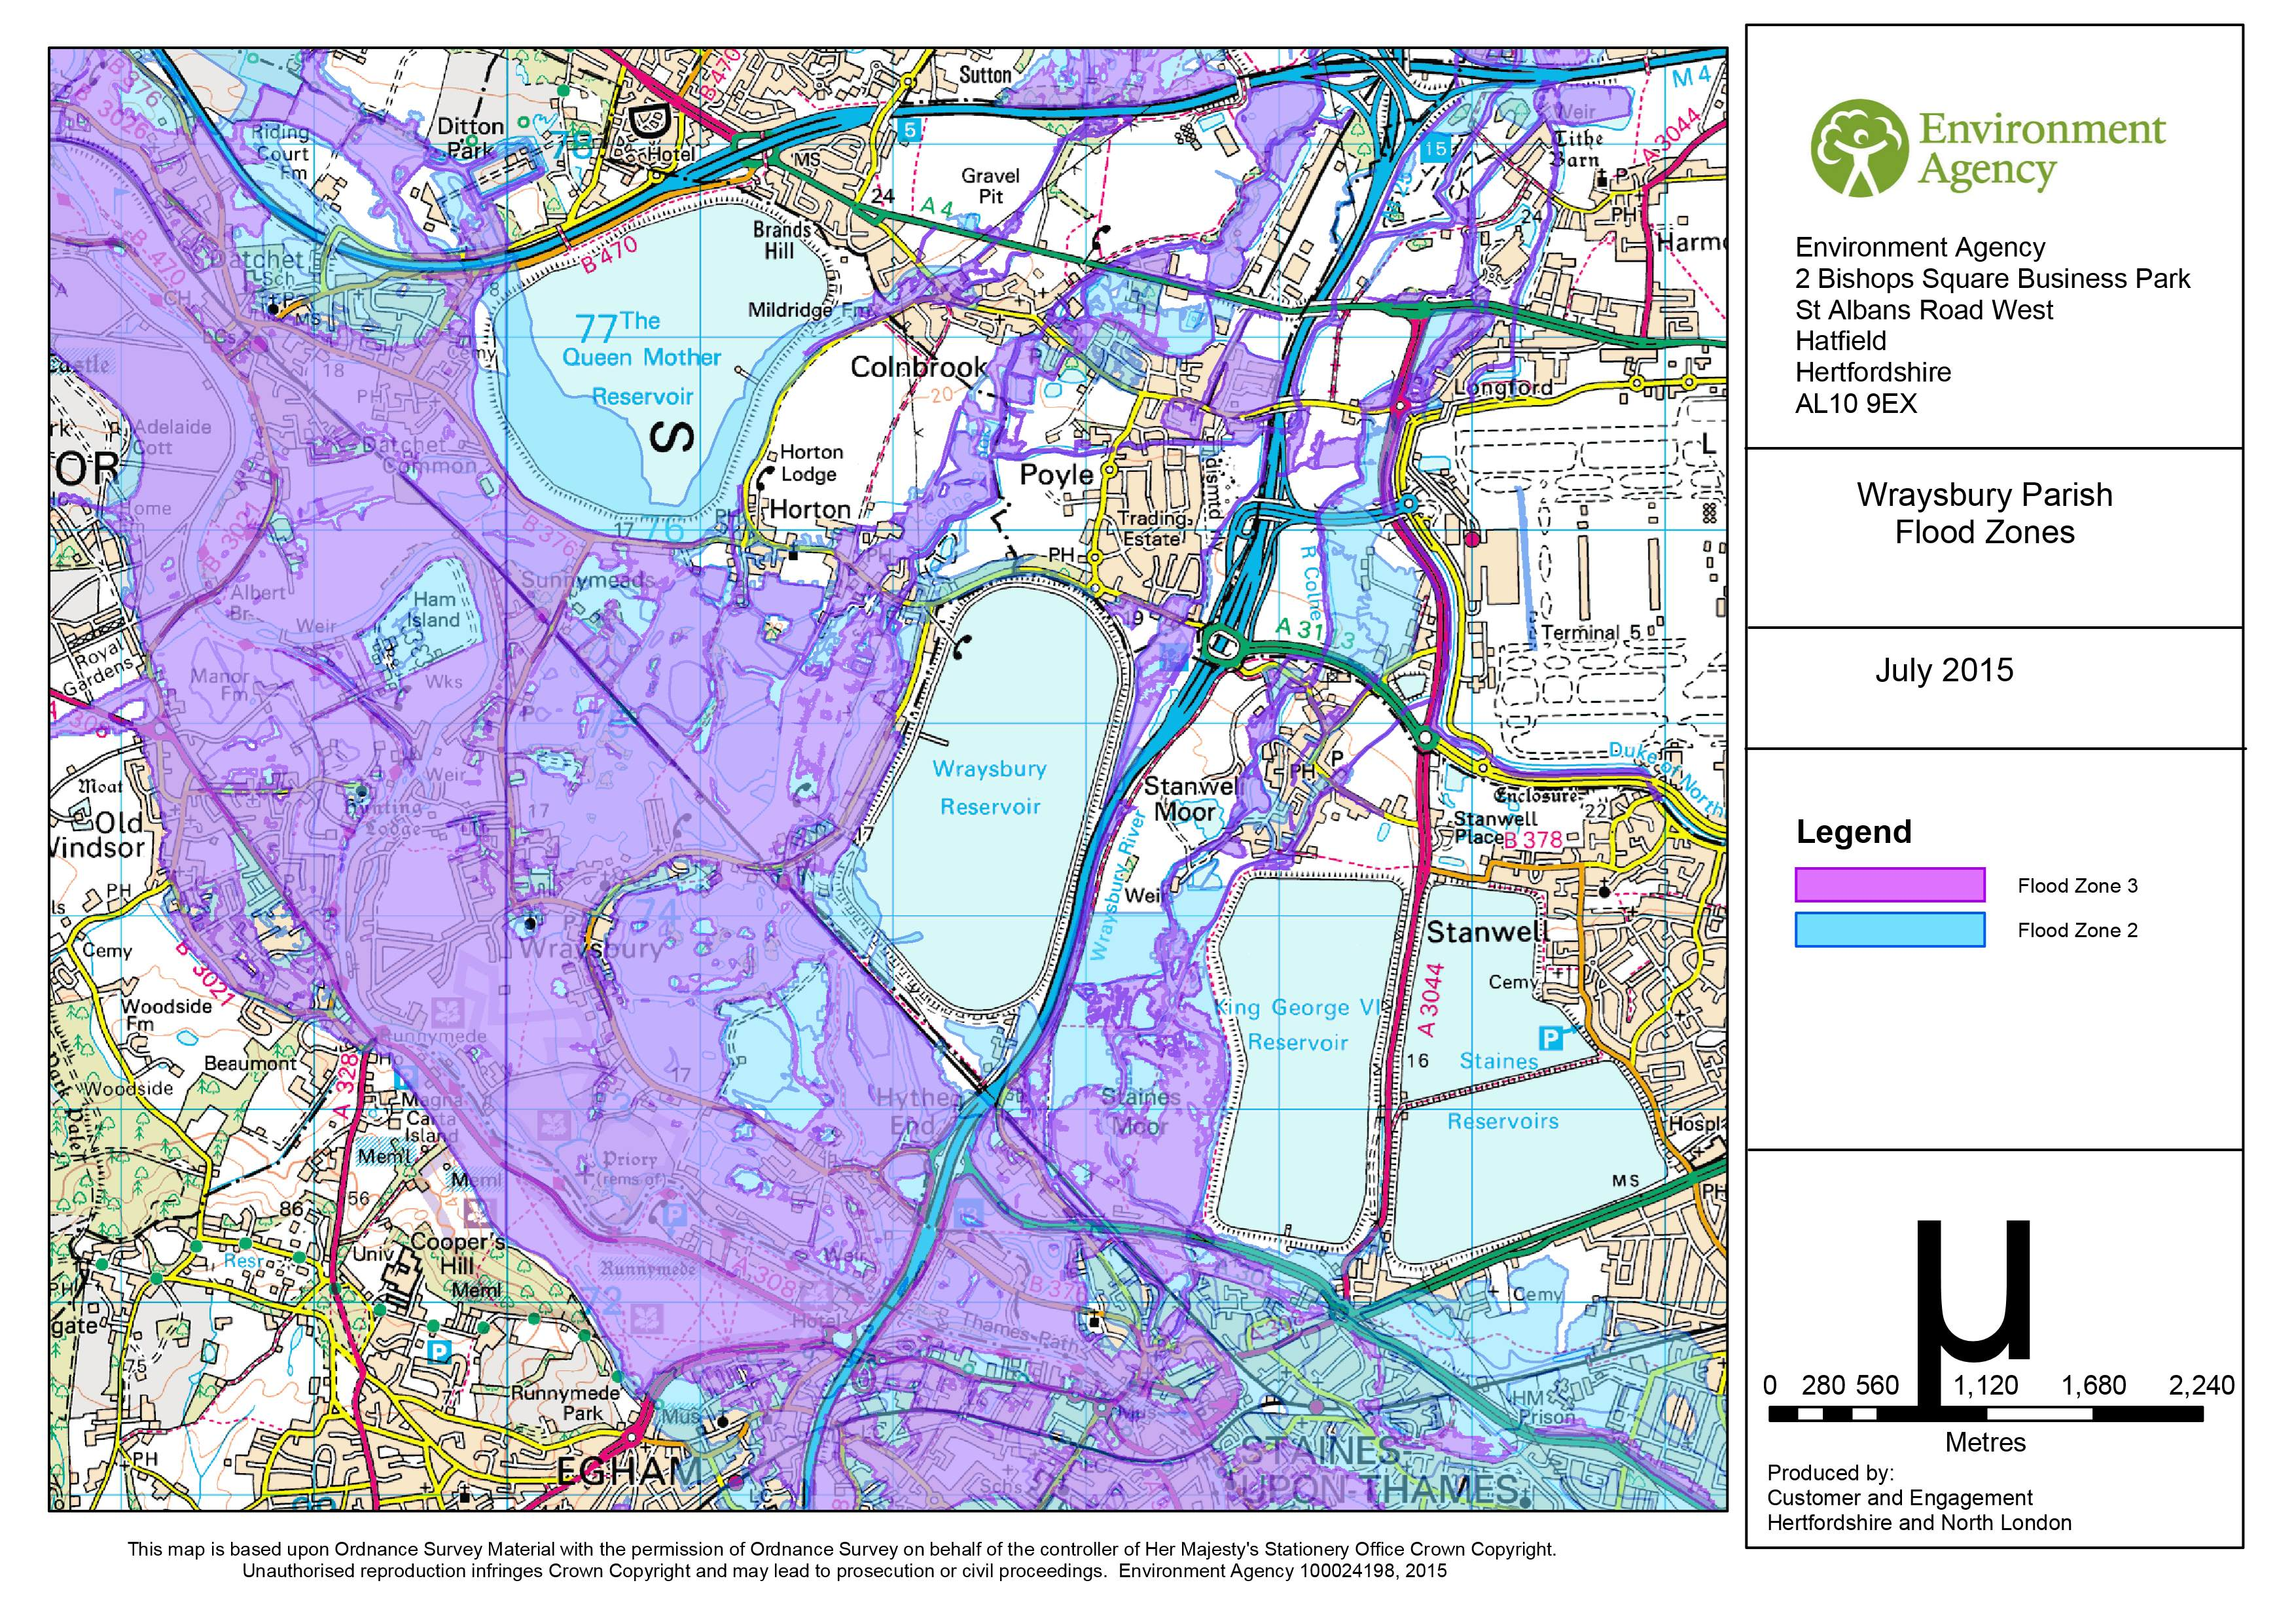 Environment Agency Flood Map For Planning Wraysbury Parish Council Environment Agency Flood Map For Planning